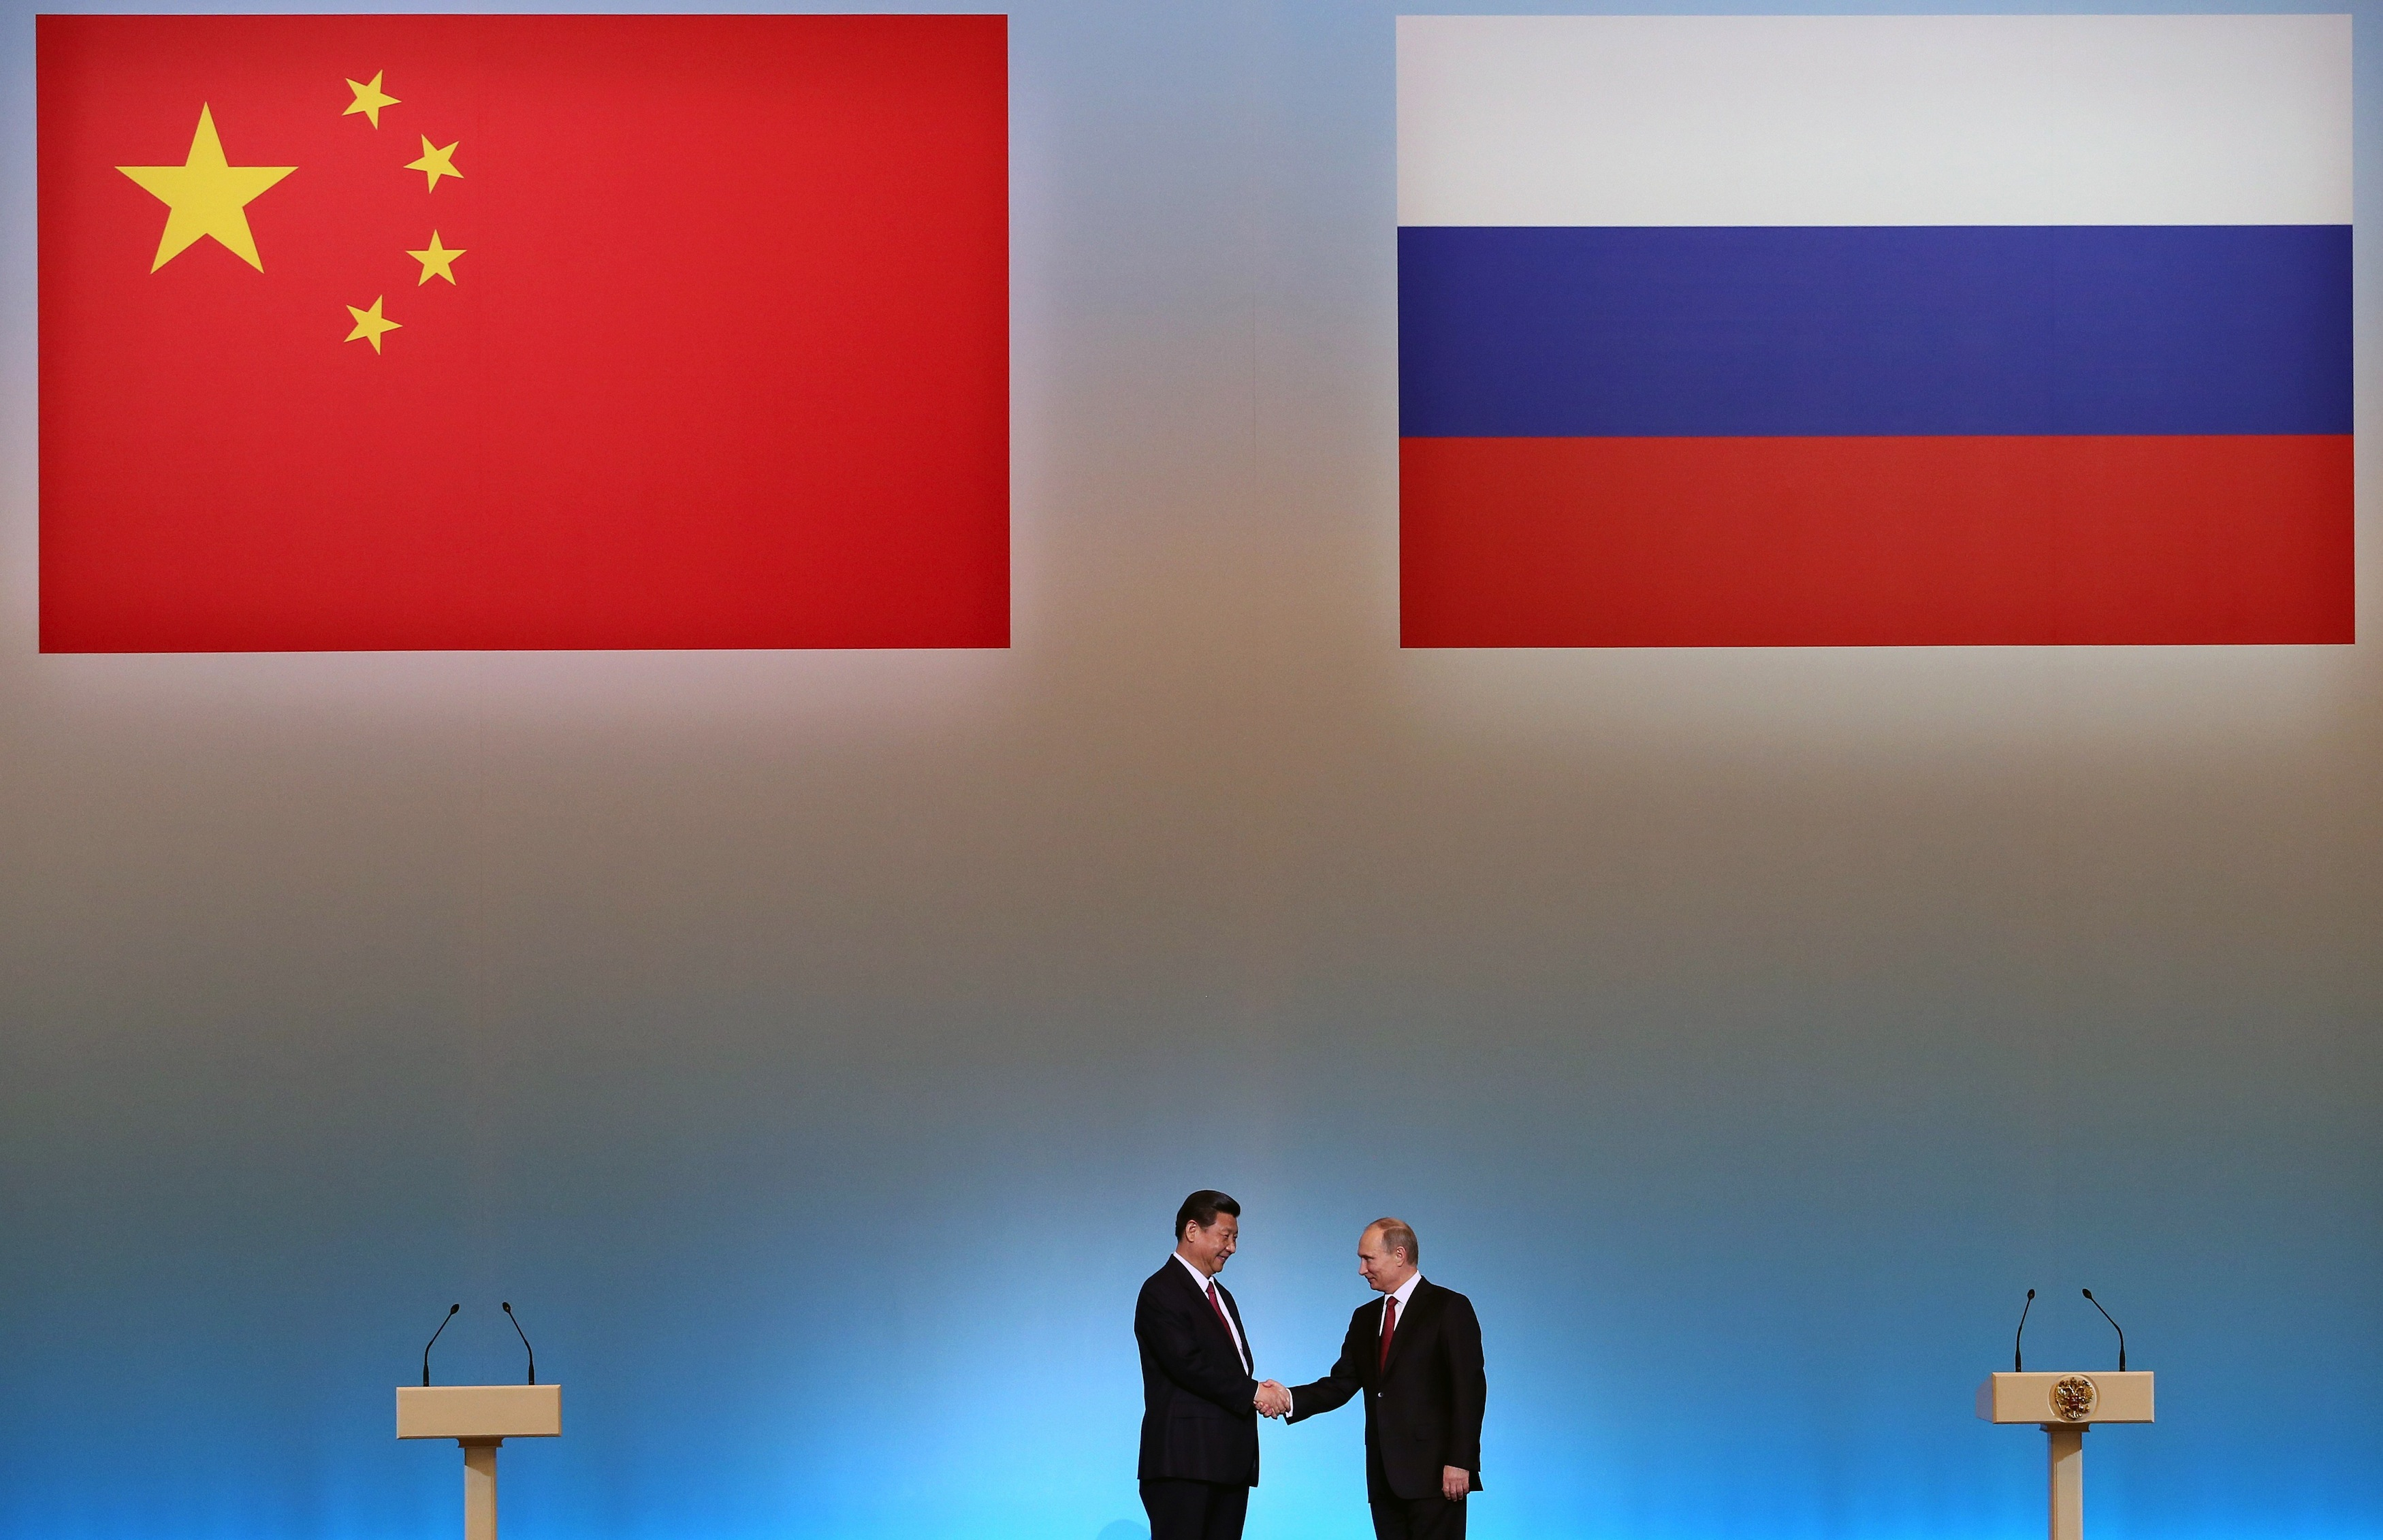 "China's President Xi Jinping (L) is welcomed by his Russian counterpart Vladimir Putin (R) during the opening ceremony of ""The Year of Chinese Tourism in Russia"" in Moscow, on March 22, 2013. China's new president Xi Jinping arrived today in Moscow on his first foreign visit since assuming the presidency earlier this month. Xi Jinping and his counterpart Vladimir Putin are set to oversee the signing of a number of energy and investment agreements including a deal that will see Russia ramp up oil supplies to China. AFP PHOTO / POOL / SERGEI ILNITSKY (Photo credit should read SERGEI ILNITSKY/AFP/Getty Images)"